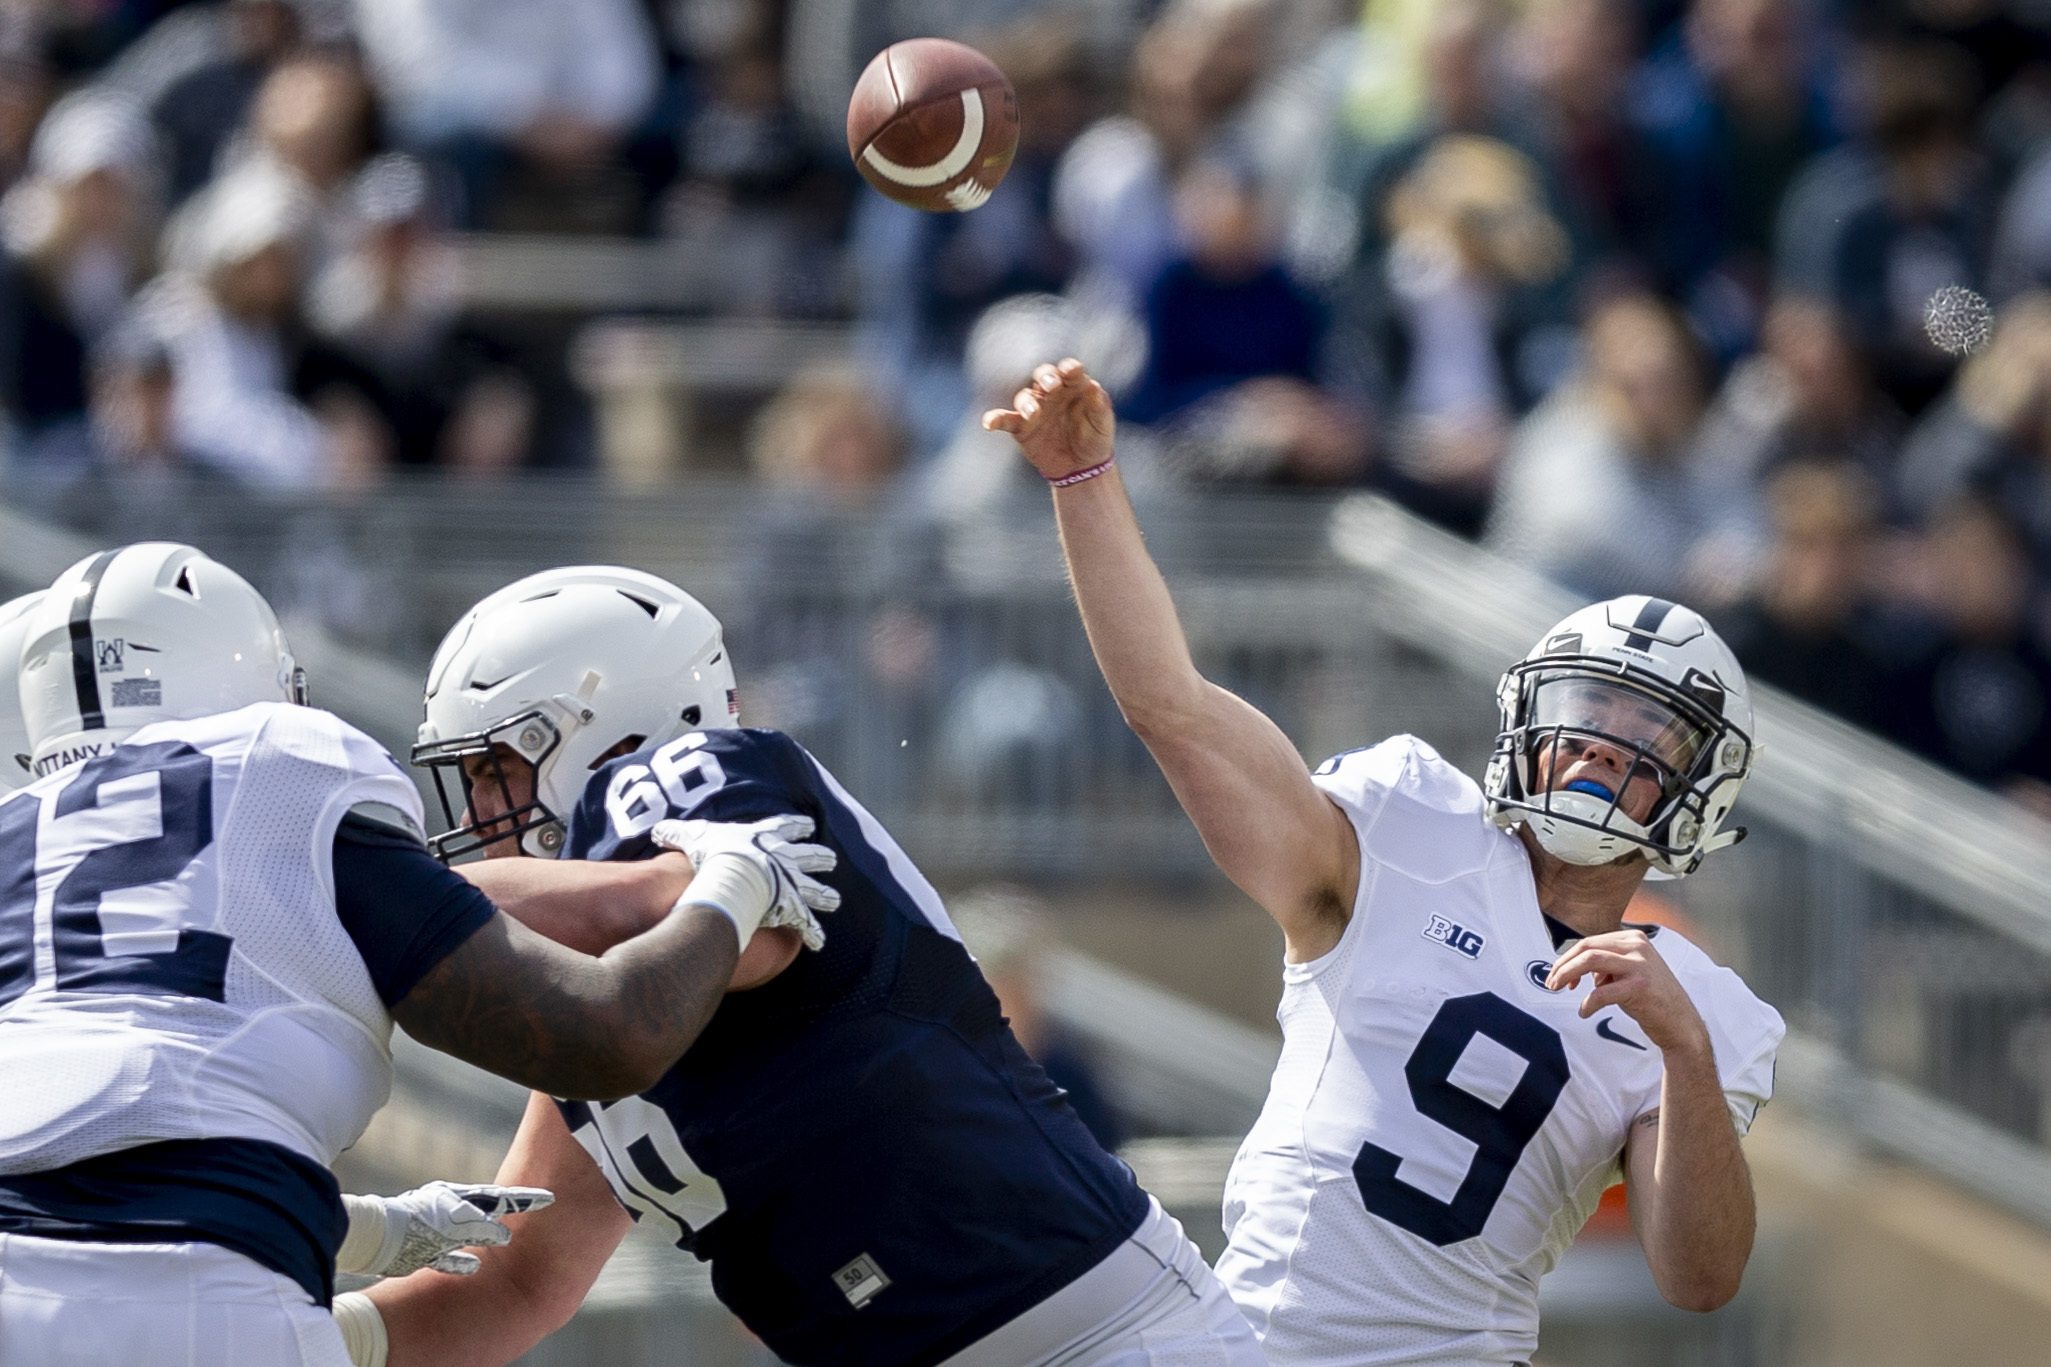 File-This April 21, 2018, file photo shows Penn State quarterback Trace McSorley, right, throwing during the first quarter of the Blue-White spring college football game in State College, Pa. McSorley has a career completion rate of 61.8 percent and has thrown a TD pass in 28 straight games, the longest active streak in the FBS. (Joe Hermitt/PennLive.com via AP, File)